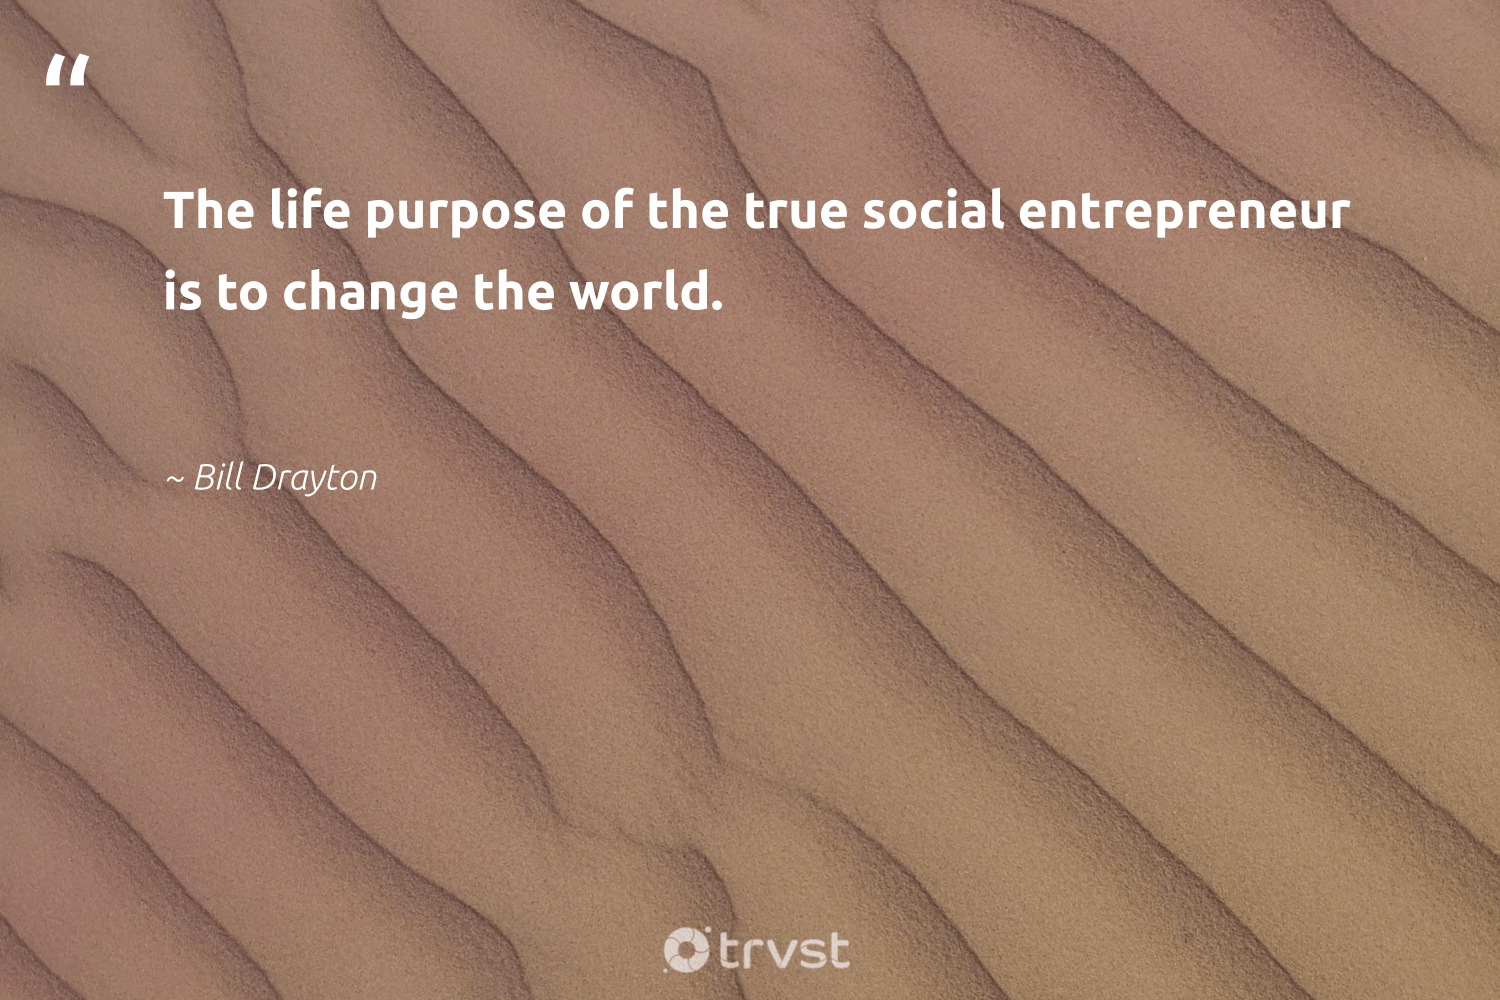 """The life purpose of the true social entrepreneur is to change the world.""  - Bill Drayton #trvst #quotes #socialenterprise #changetheworld #socialentrepreneur #purpose #entrepreneur #socialimpact #ethicalbusiness #dogood #bethechange #sociallyconscious"